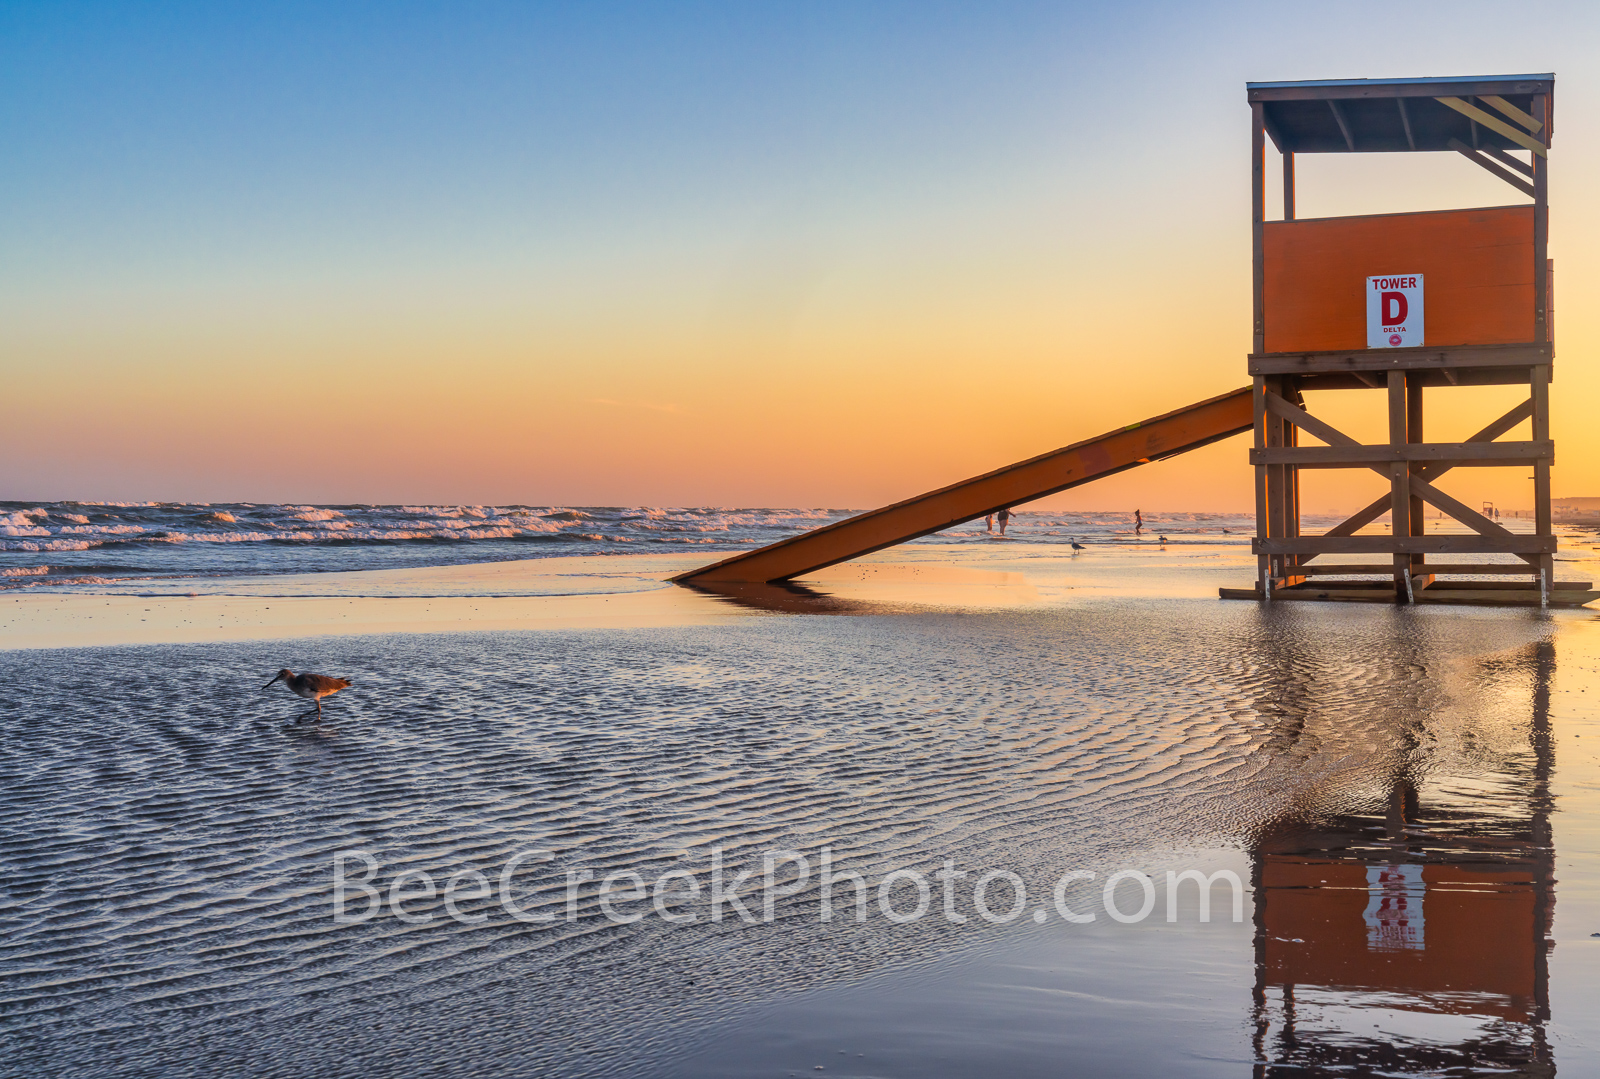 Port Aransas Life Guard Stand - Well it was after sunset and the color in the sky still had highlights of color.  We capture...